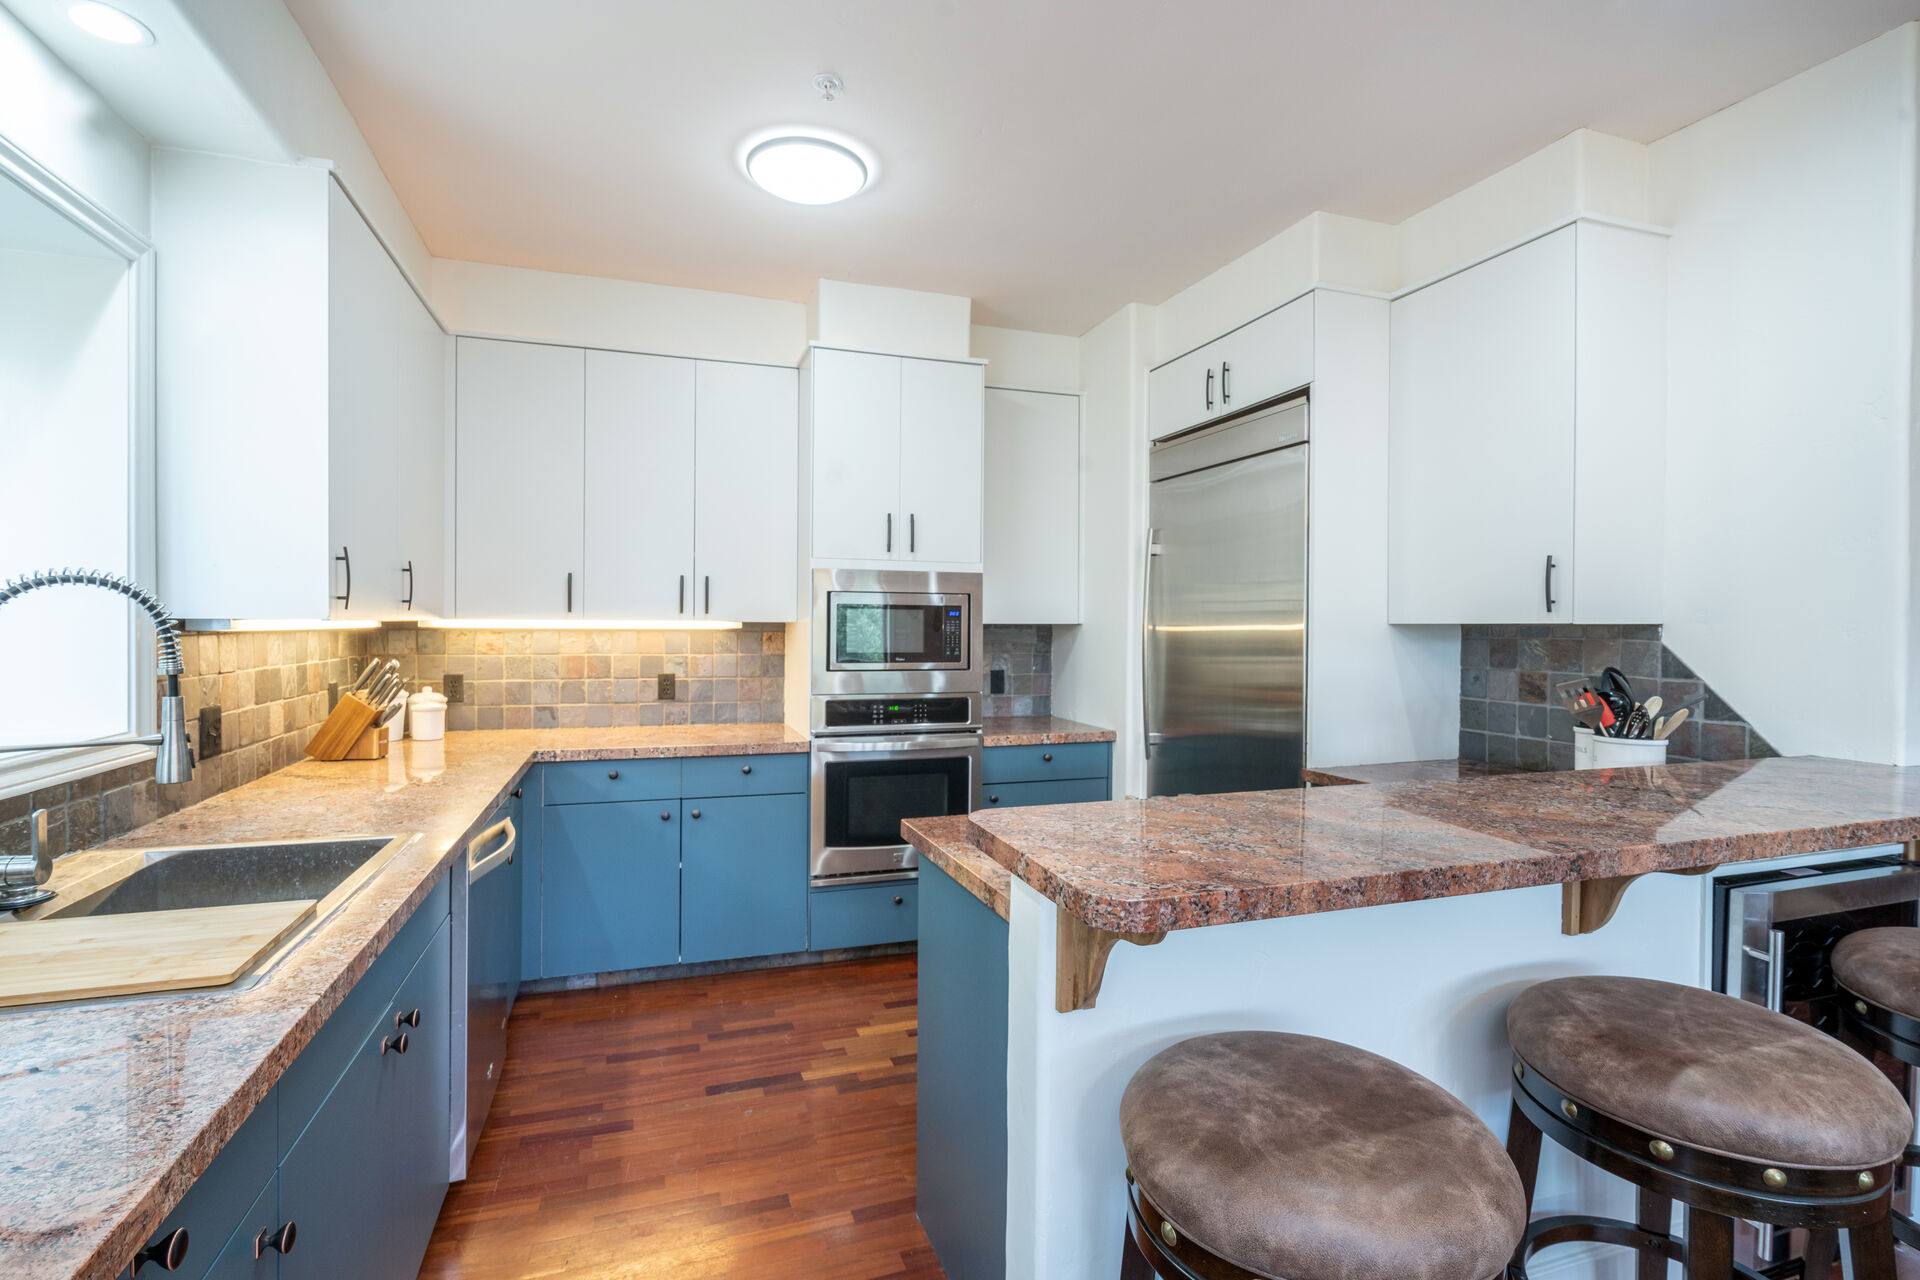 Kitchen with wood floors and stainless steel appliances